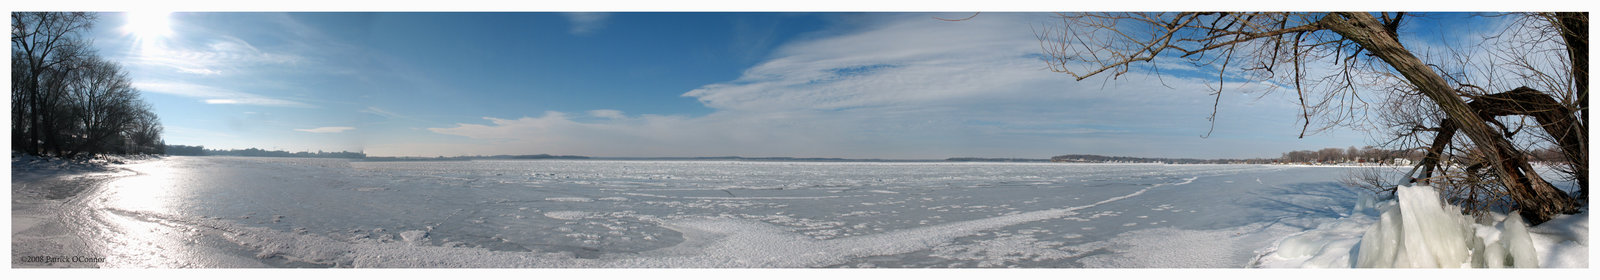 Lake Mendota Panoramic 2 by cheeseheads